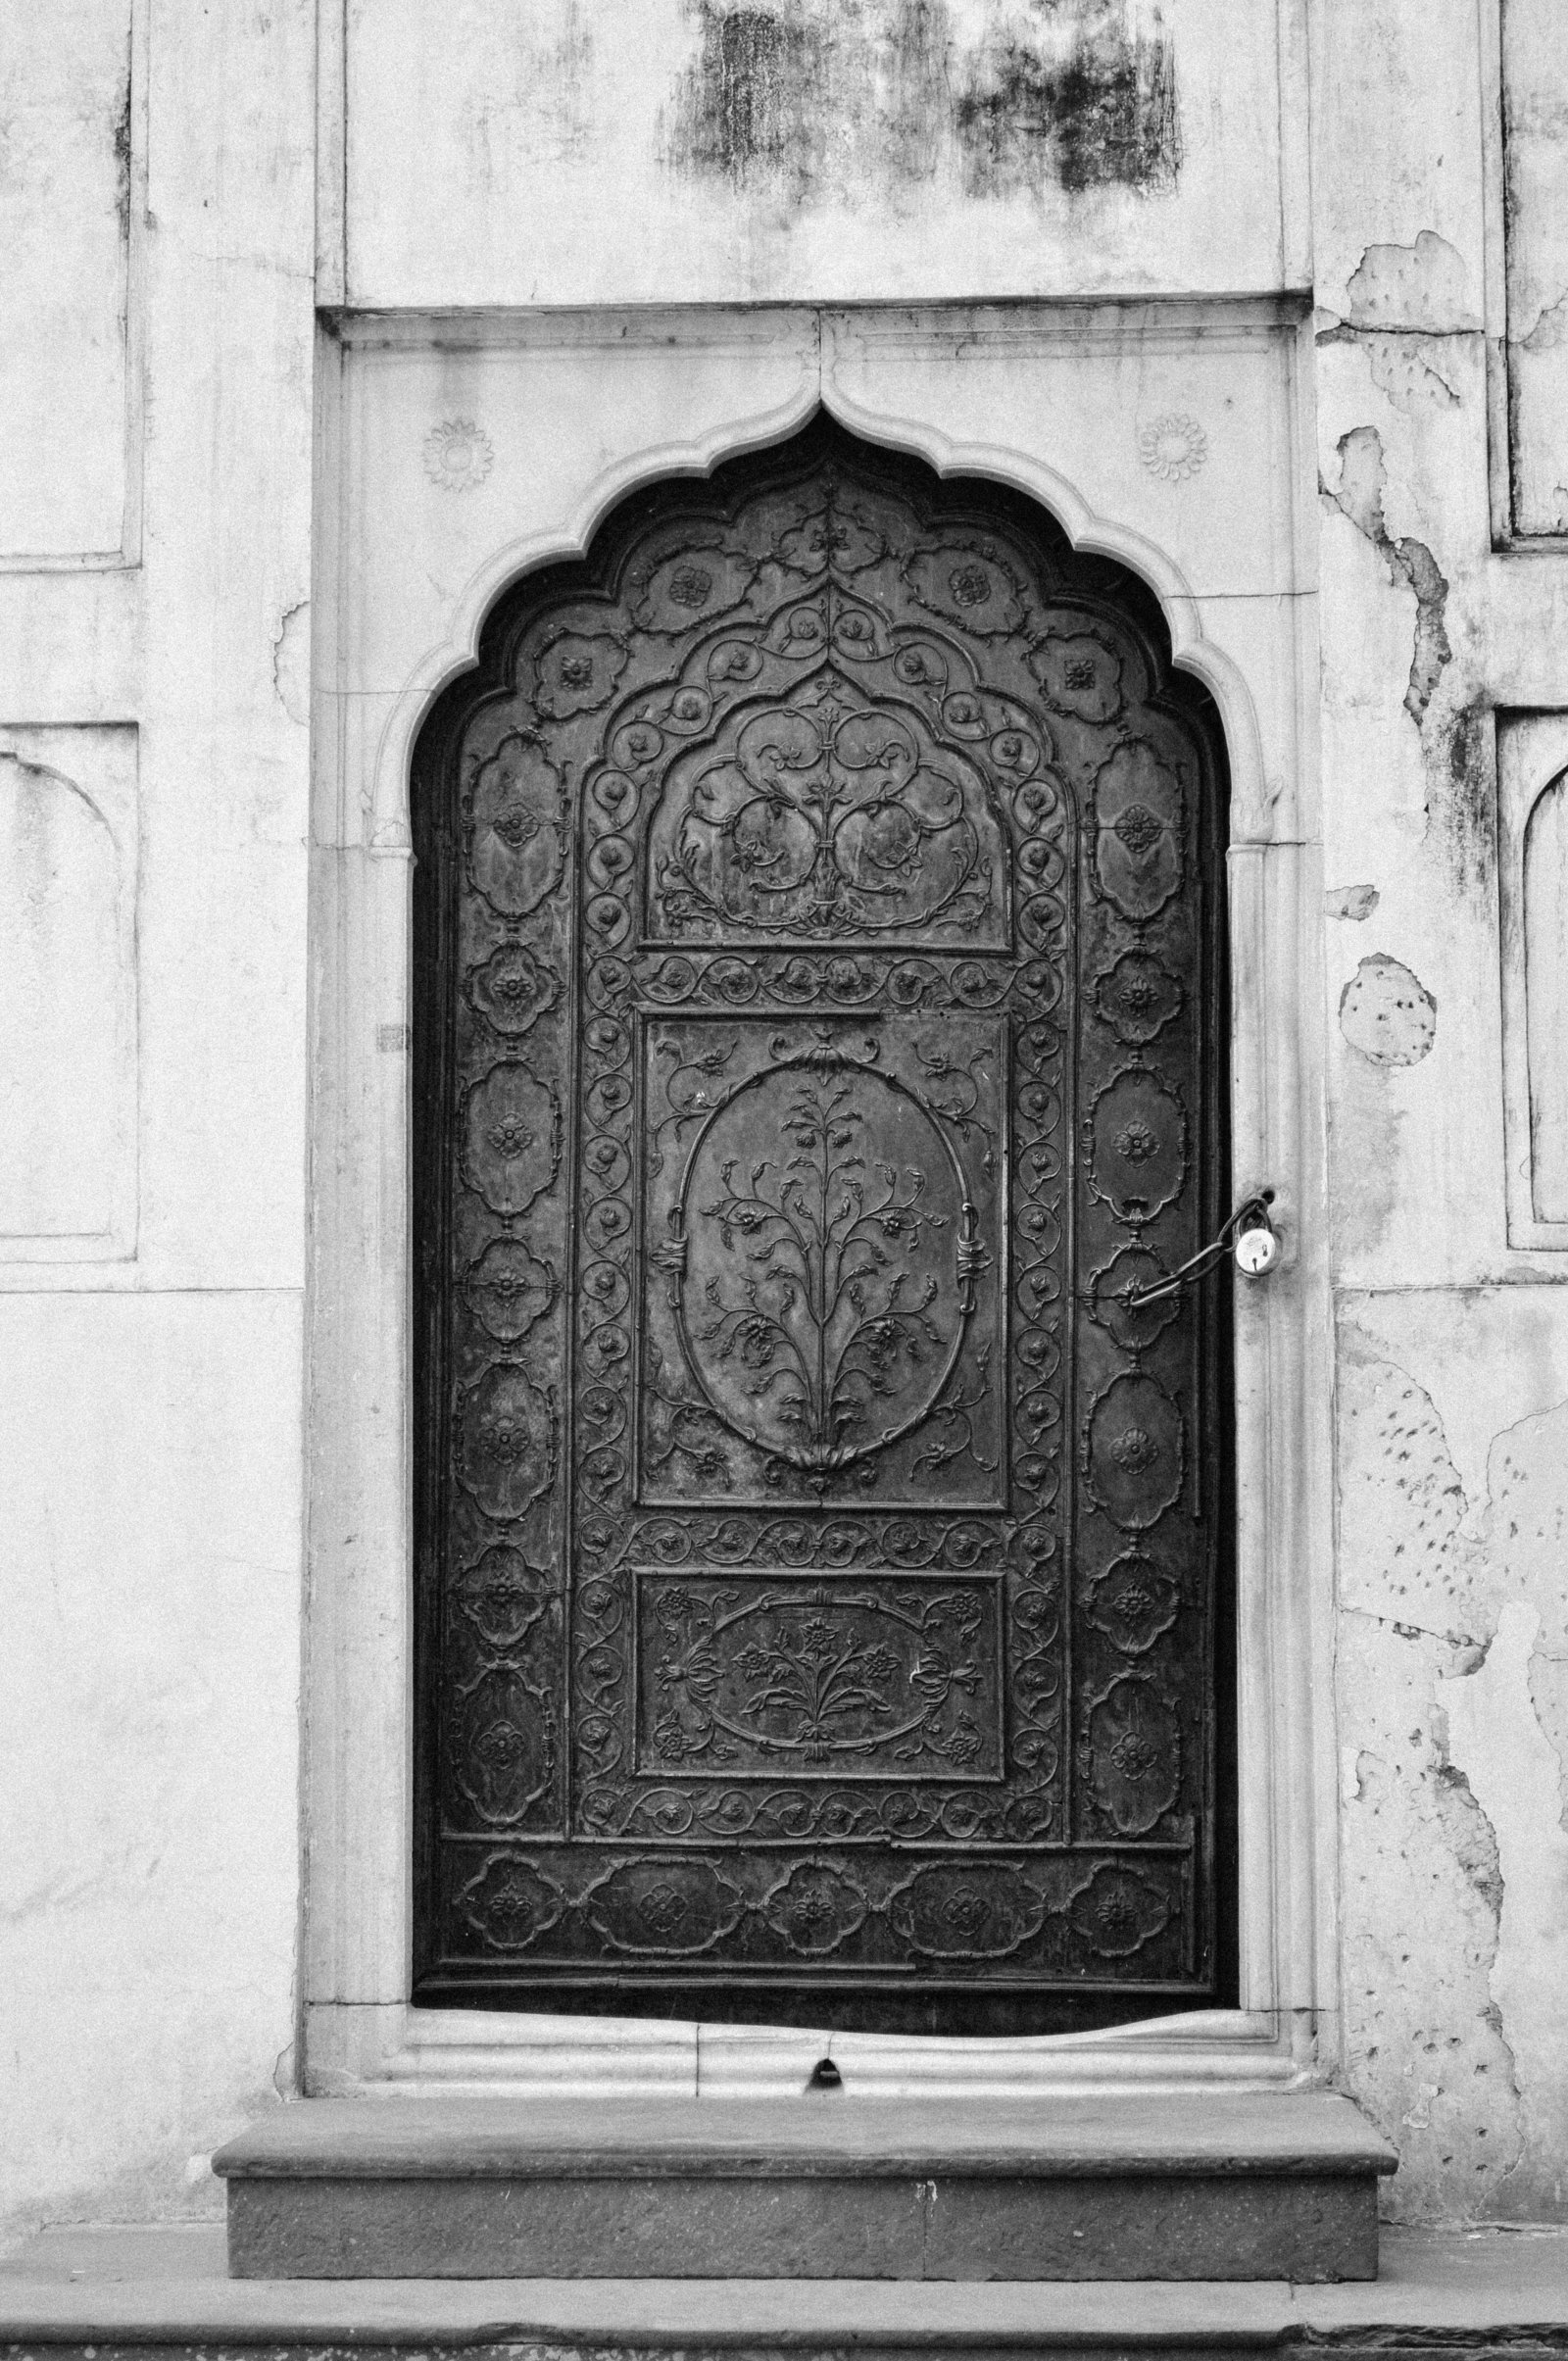 fatehpur-sikri-lead-images-antique-ornate-door-india (1 of 1)